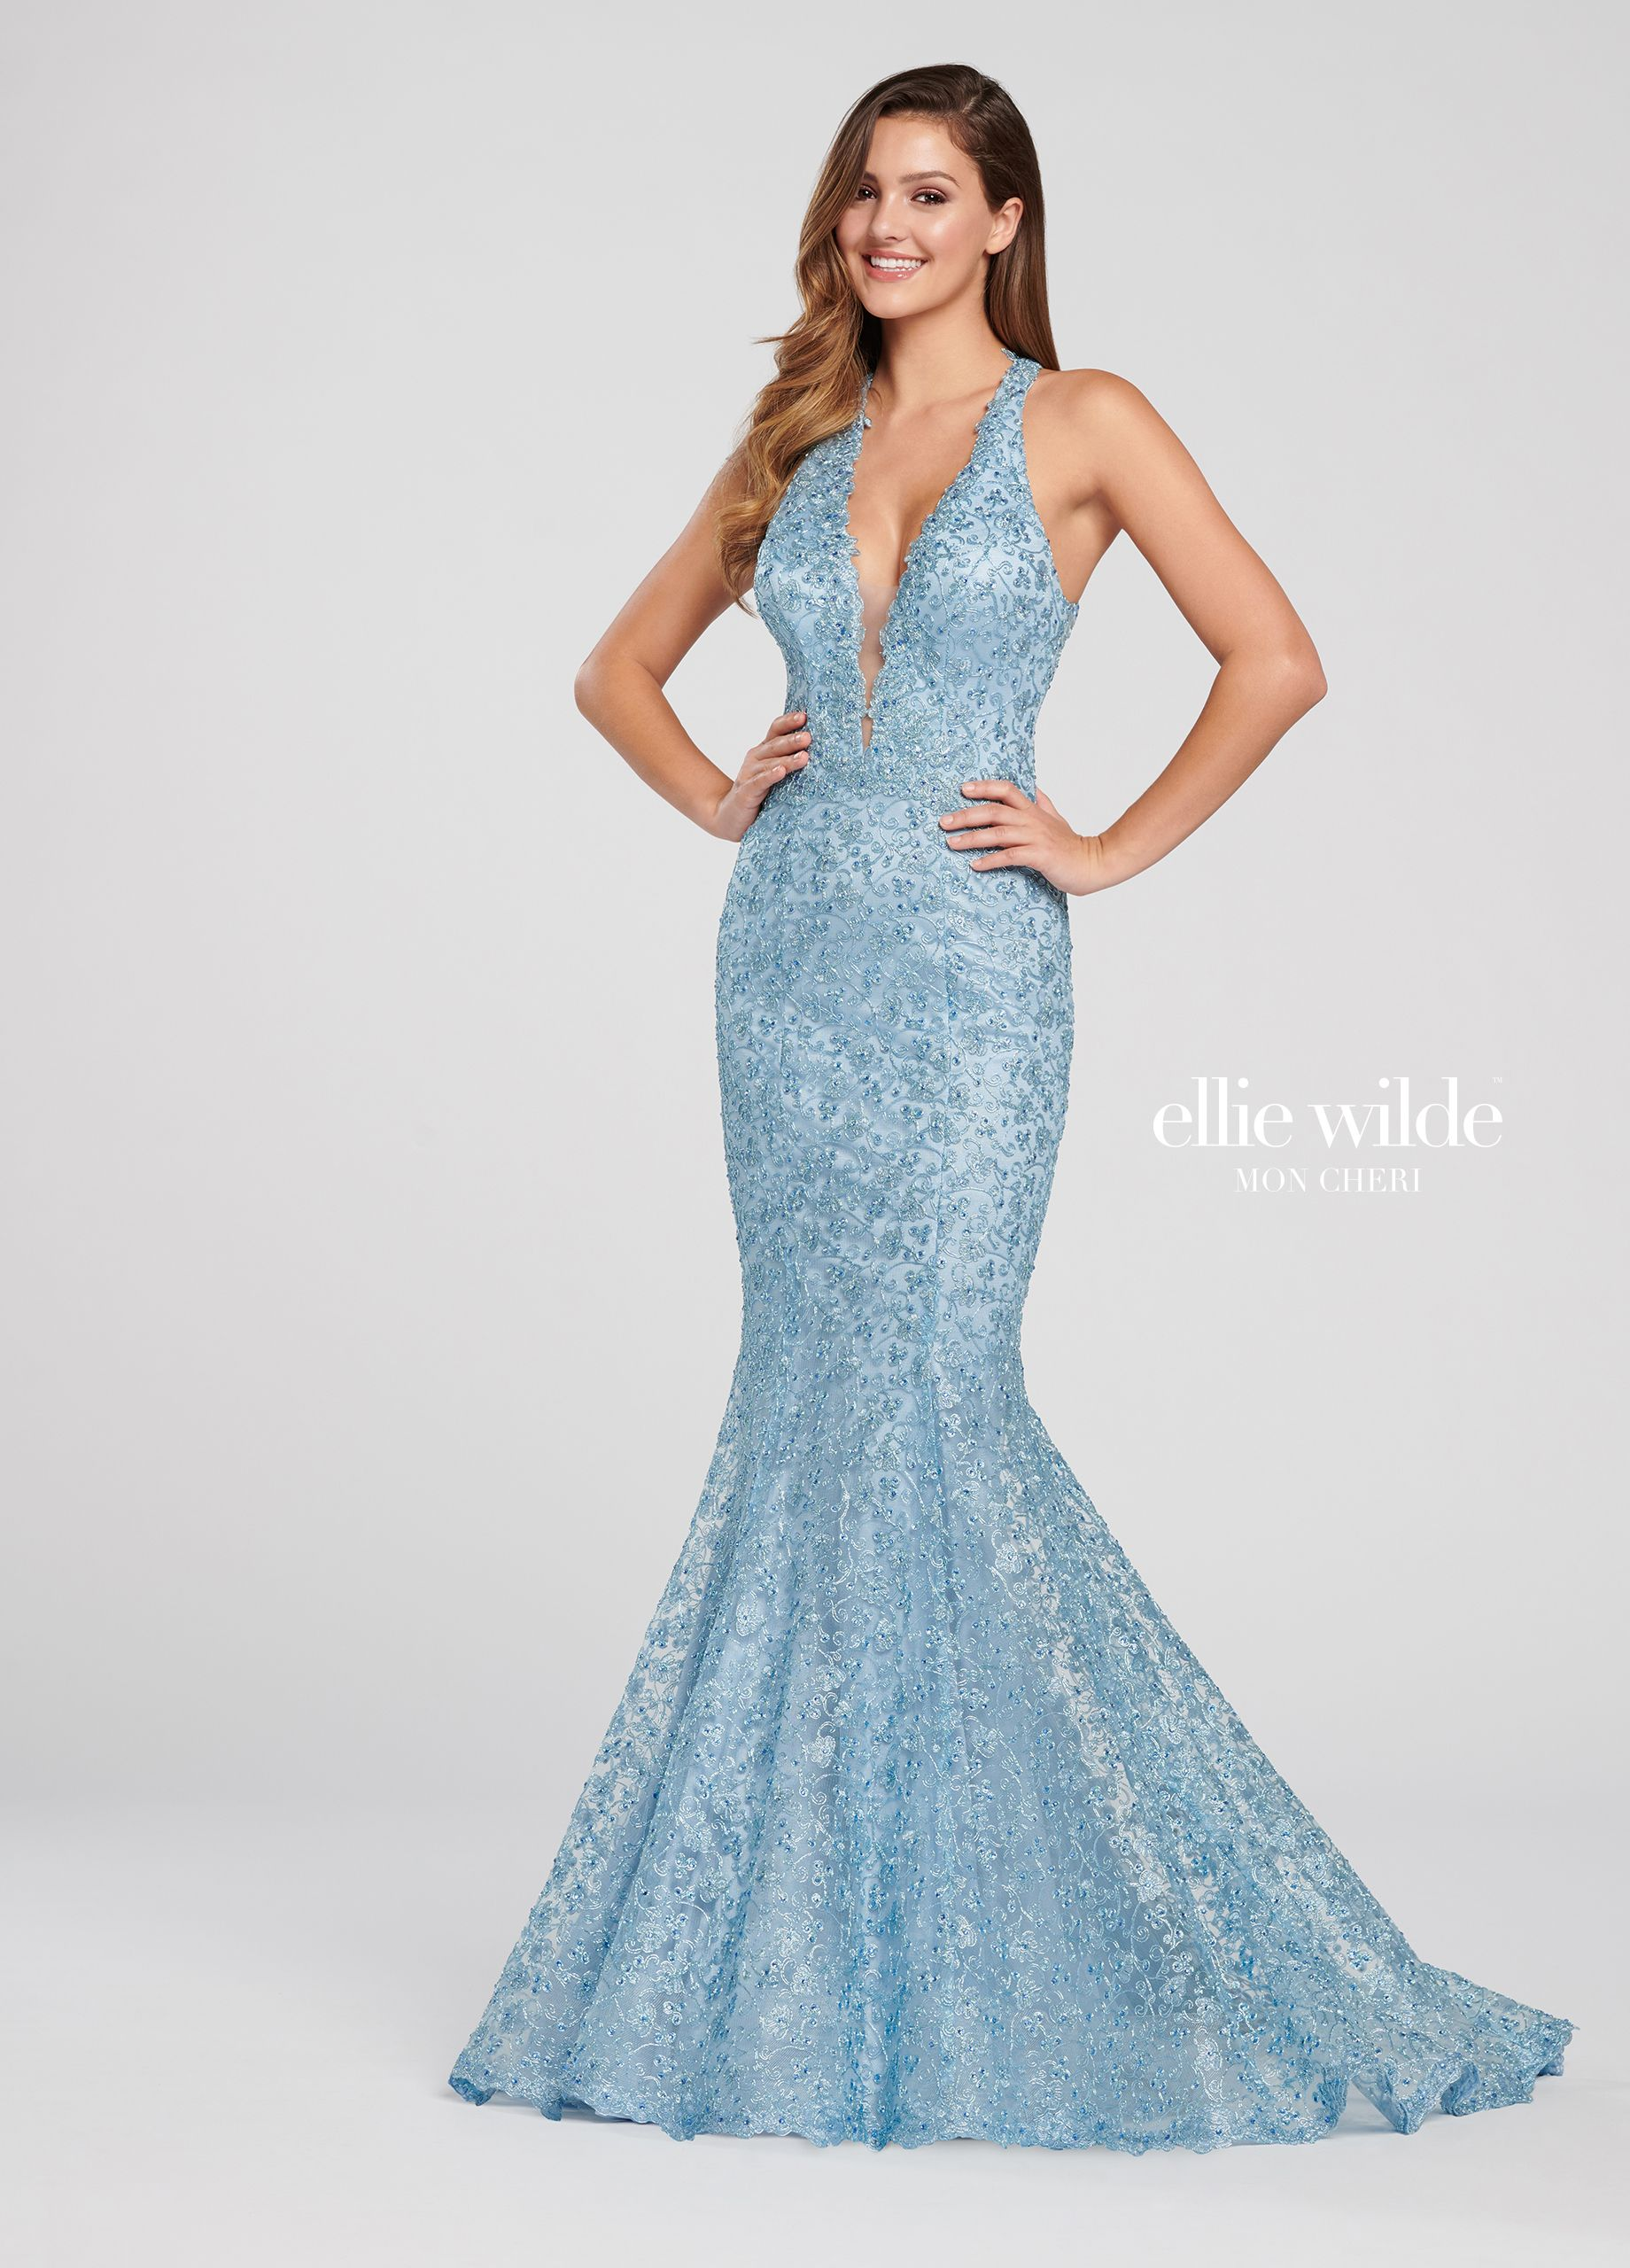 a2b52130e62ea Ellie Wilde EW119096 - This seductive sleeveless metallic lace trumpet  halter gown features an extreme plunge V-neck with an illusion panel, ...